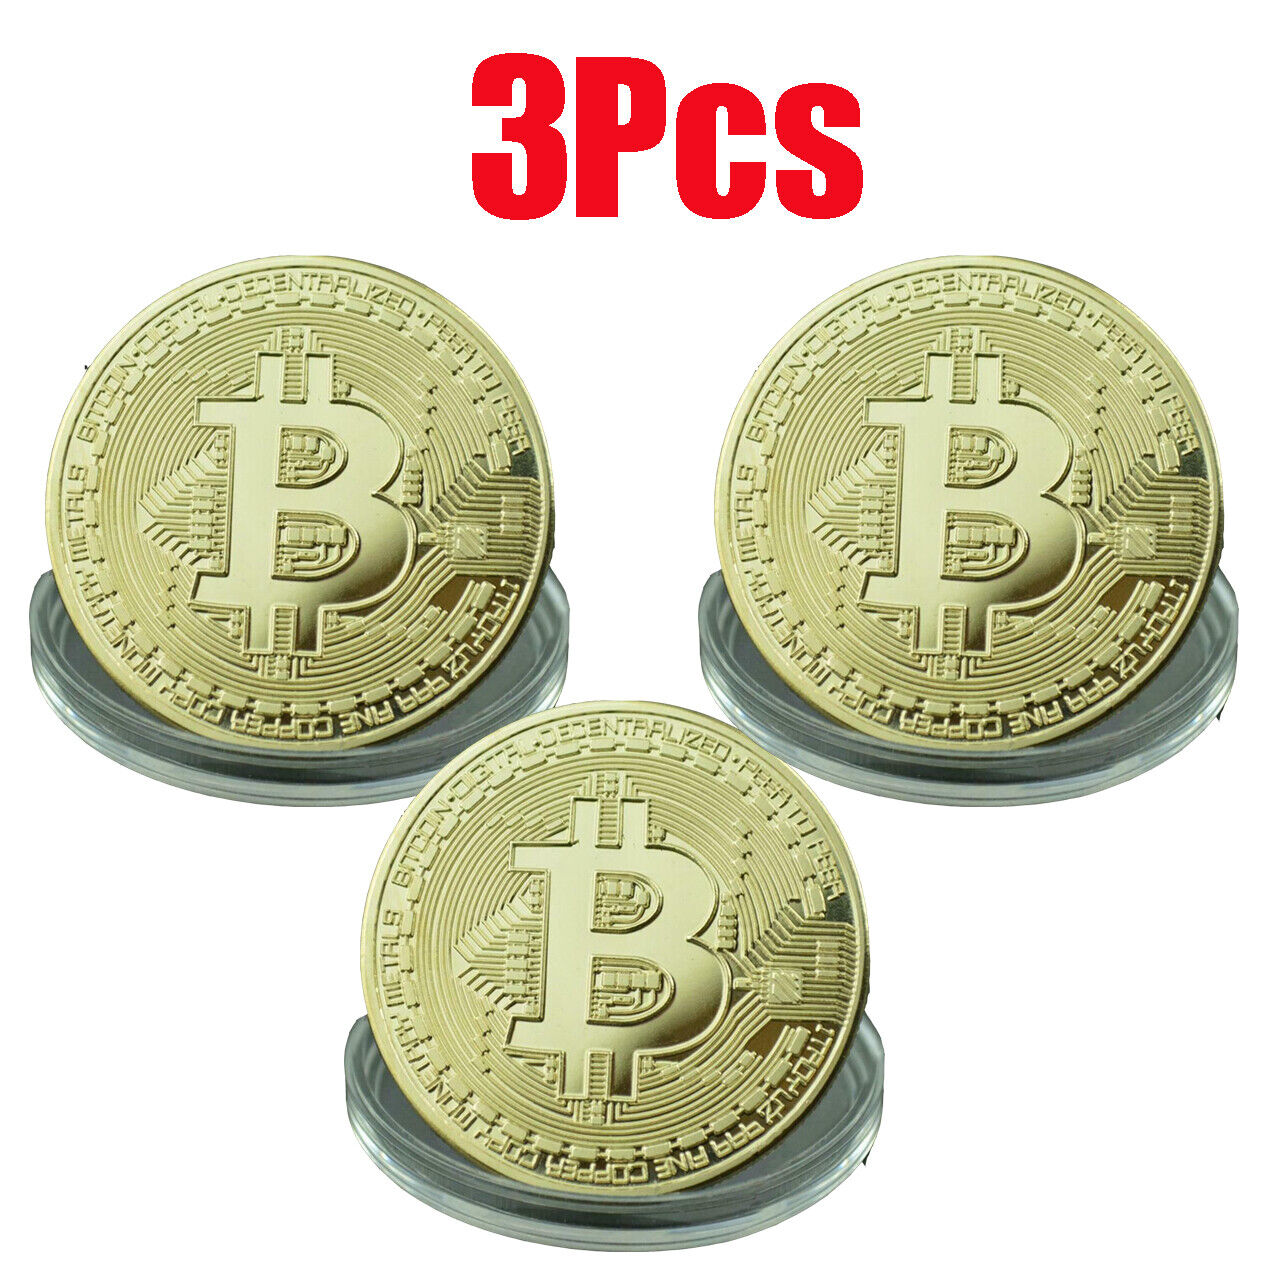 3Pcs Gold Bitcoin Commemorative 2020 New Collectors Gold Plated Bit Coin USA